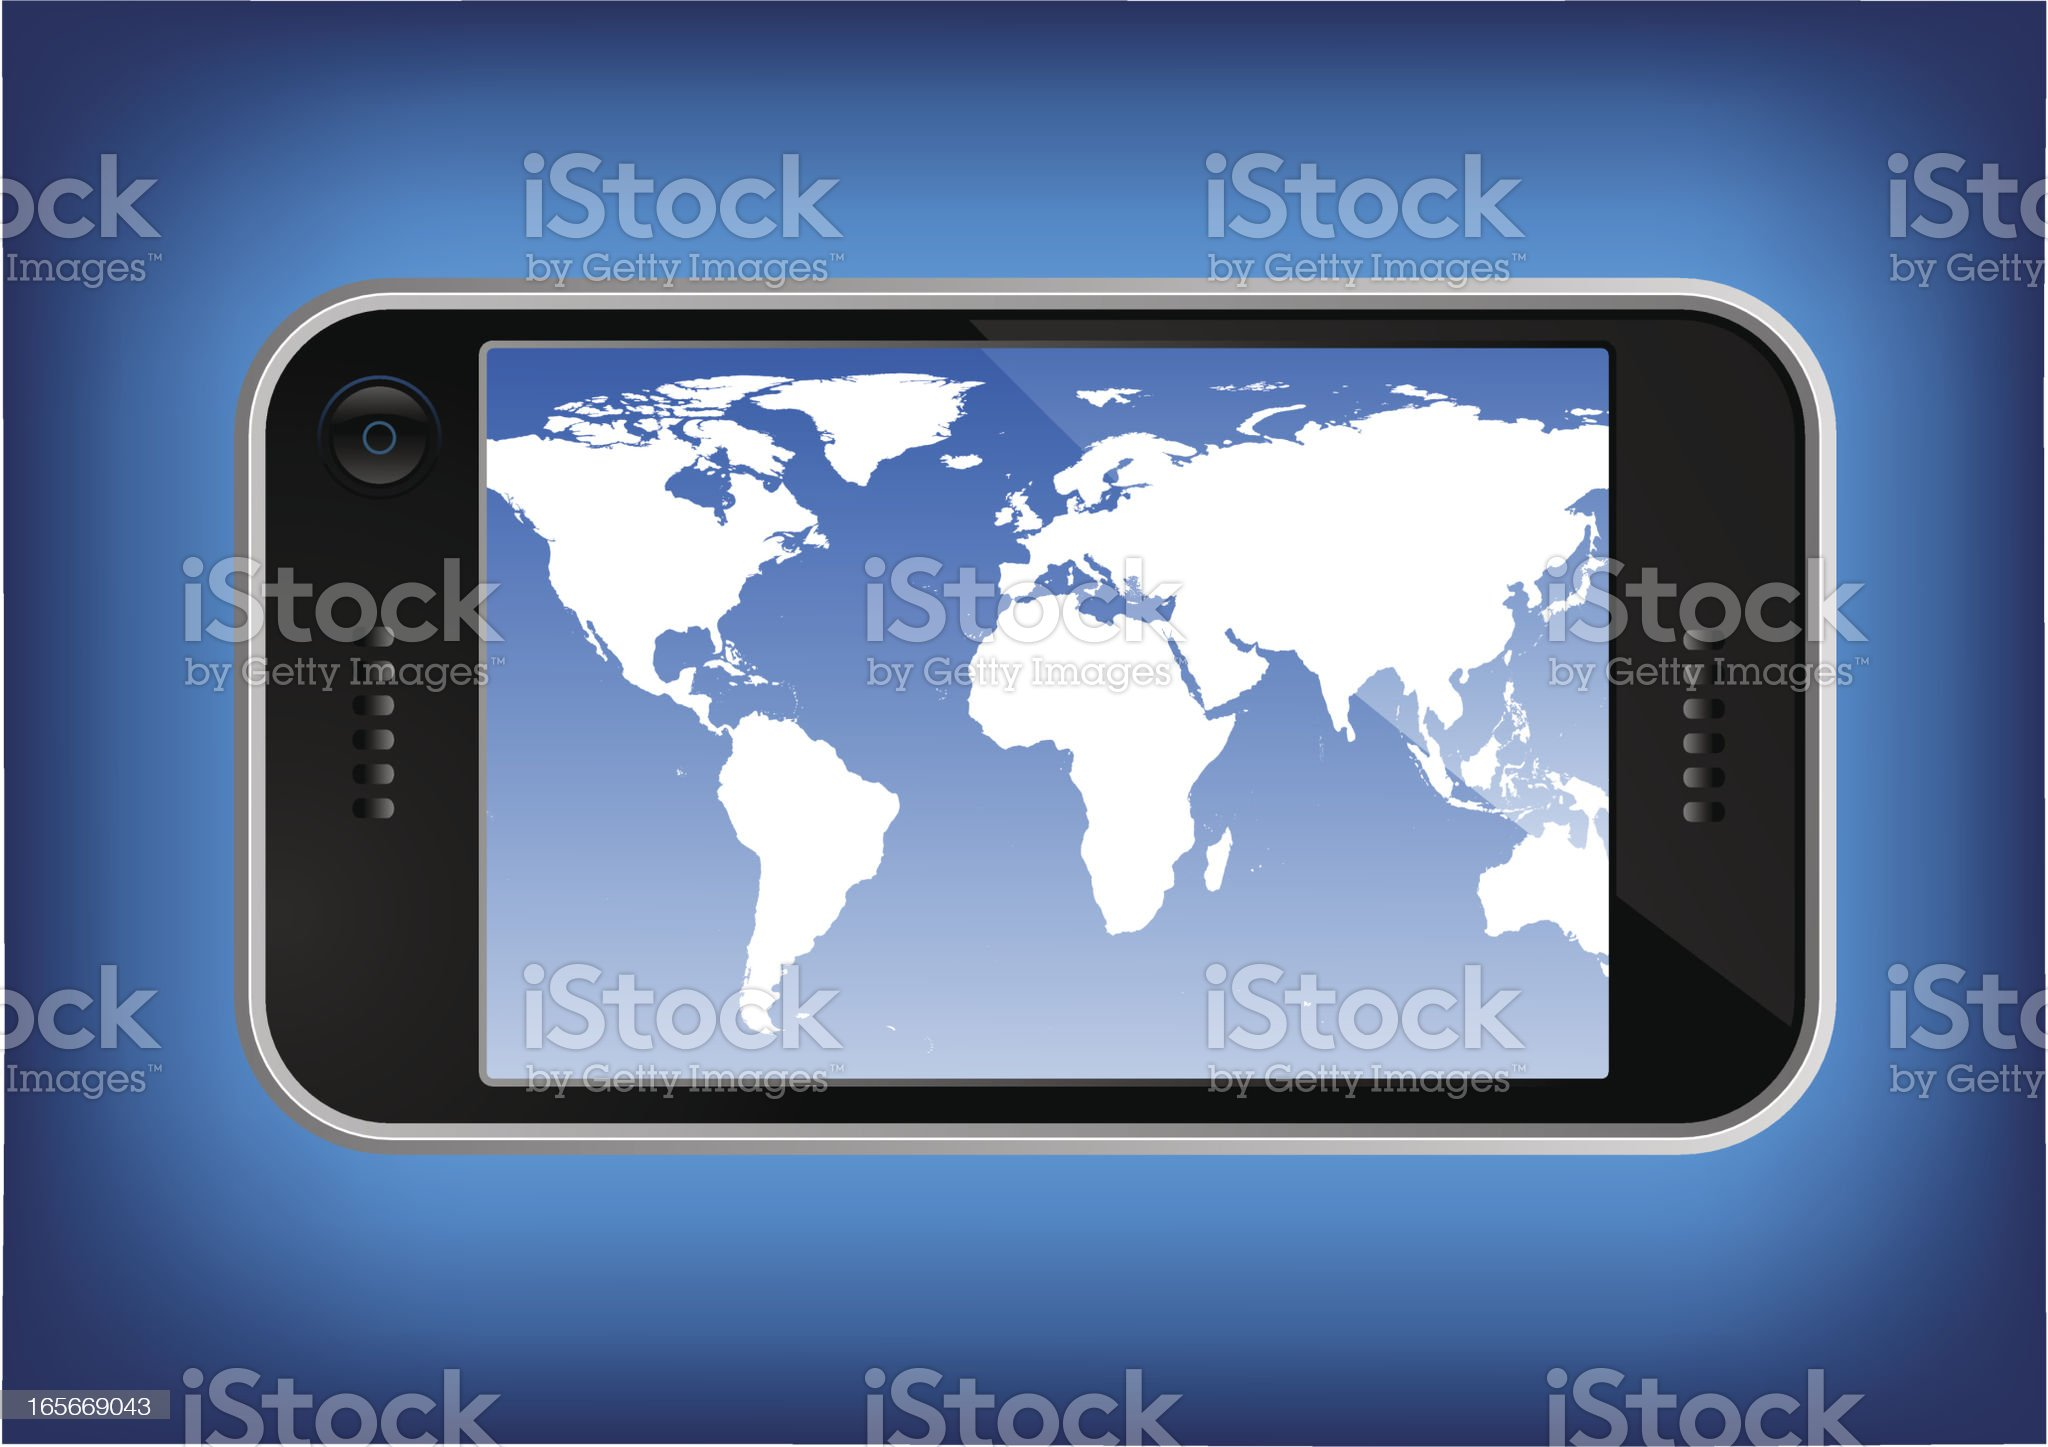 Generic GPS device with world map royalty-free stock vector art